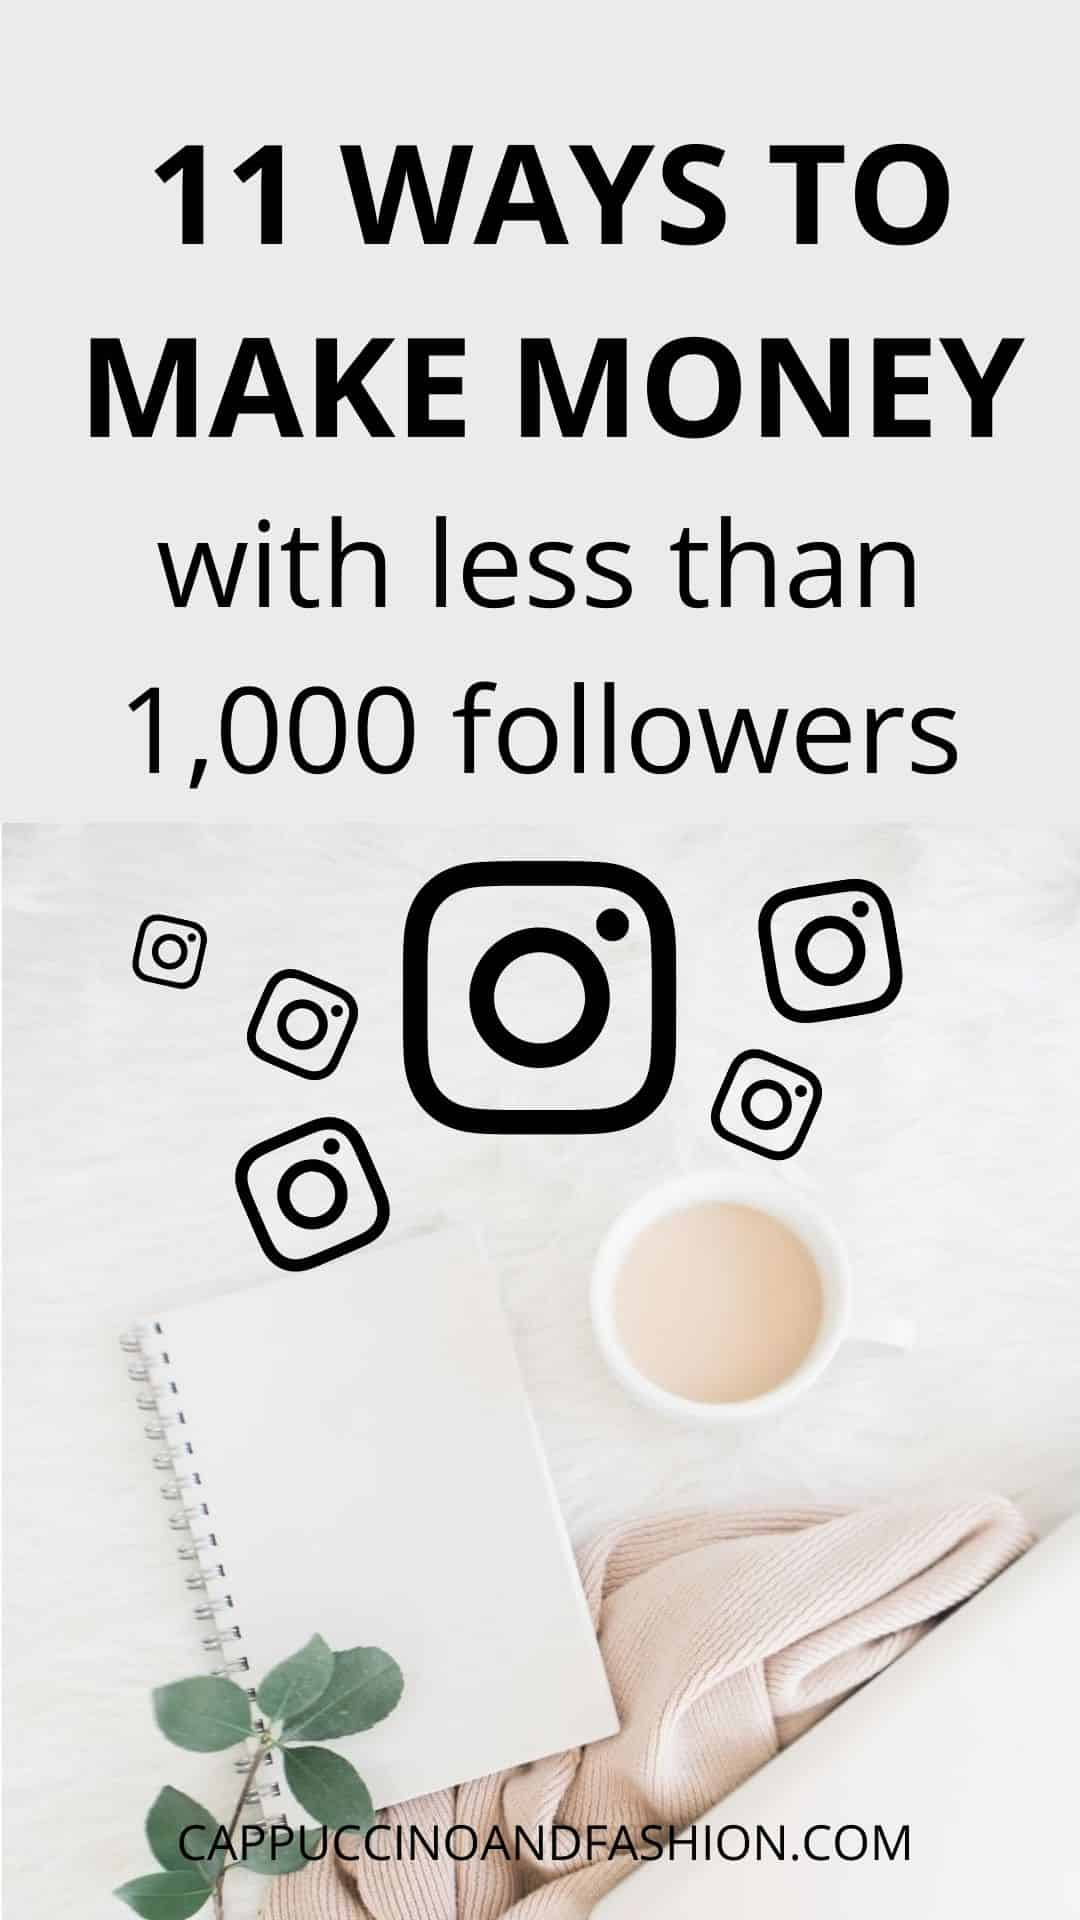 11 Clever Ways to Make Money on Instagram With Less Than 1000 Followers